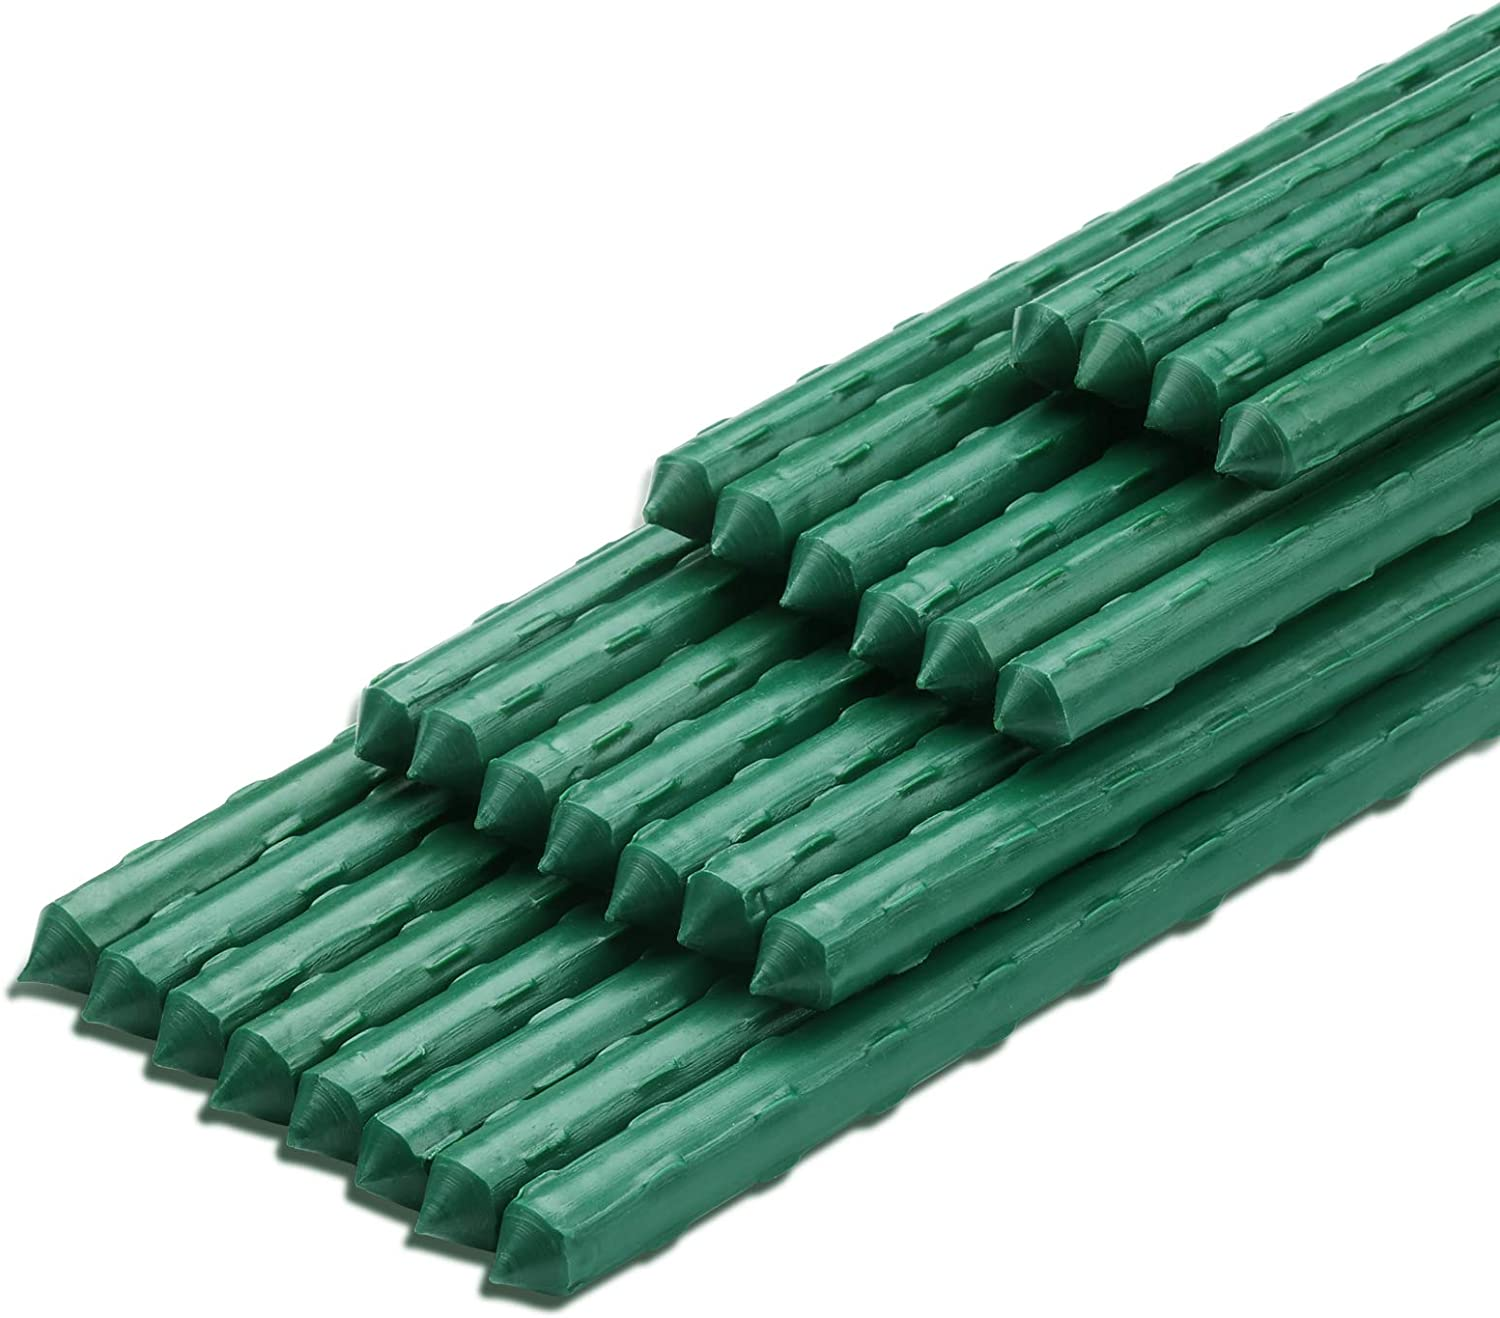 Ativia 4FT 25PCS Garden Stakes Plant Support, Steel Tube & Plastic Coated Sturdy Metal Sticks Plants Supporter for Gardening Tomato Cucumber Strawberry Bean Tree Vegetables (25 Pack-48 Inches, Green)